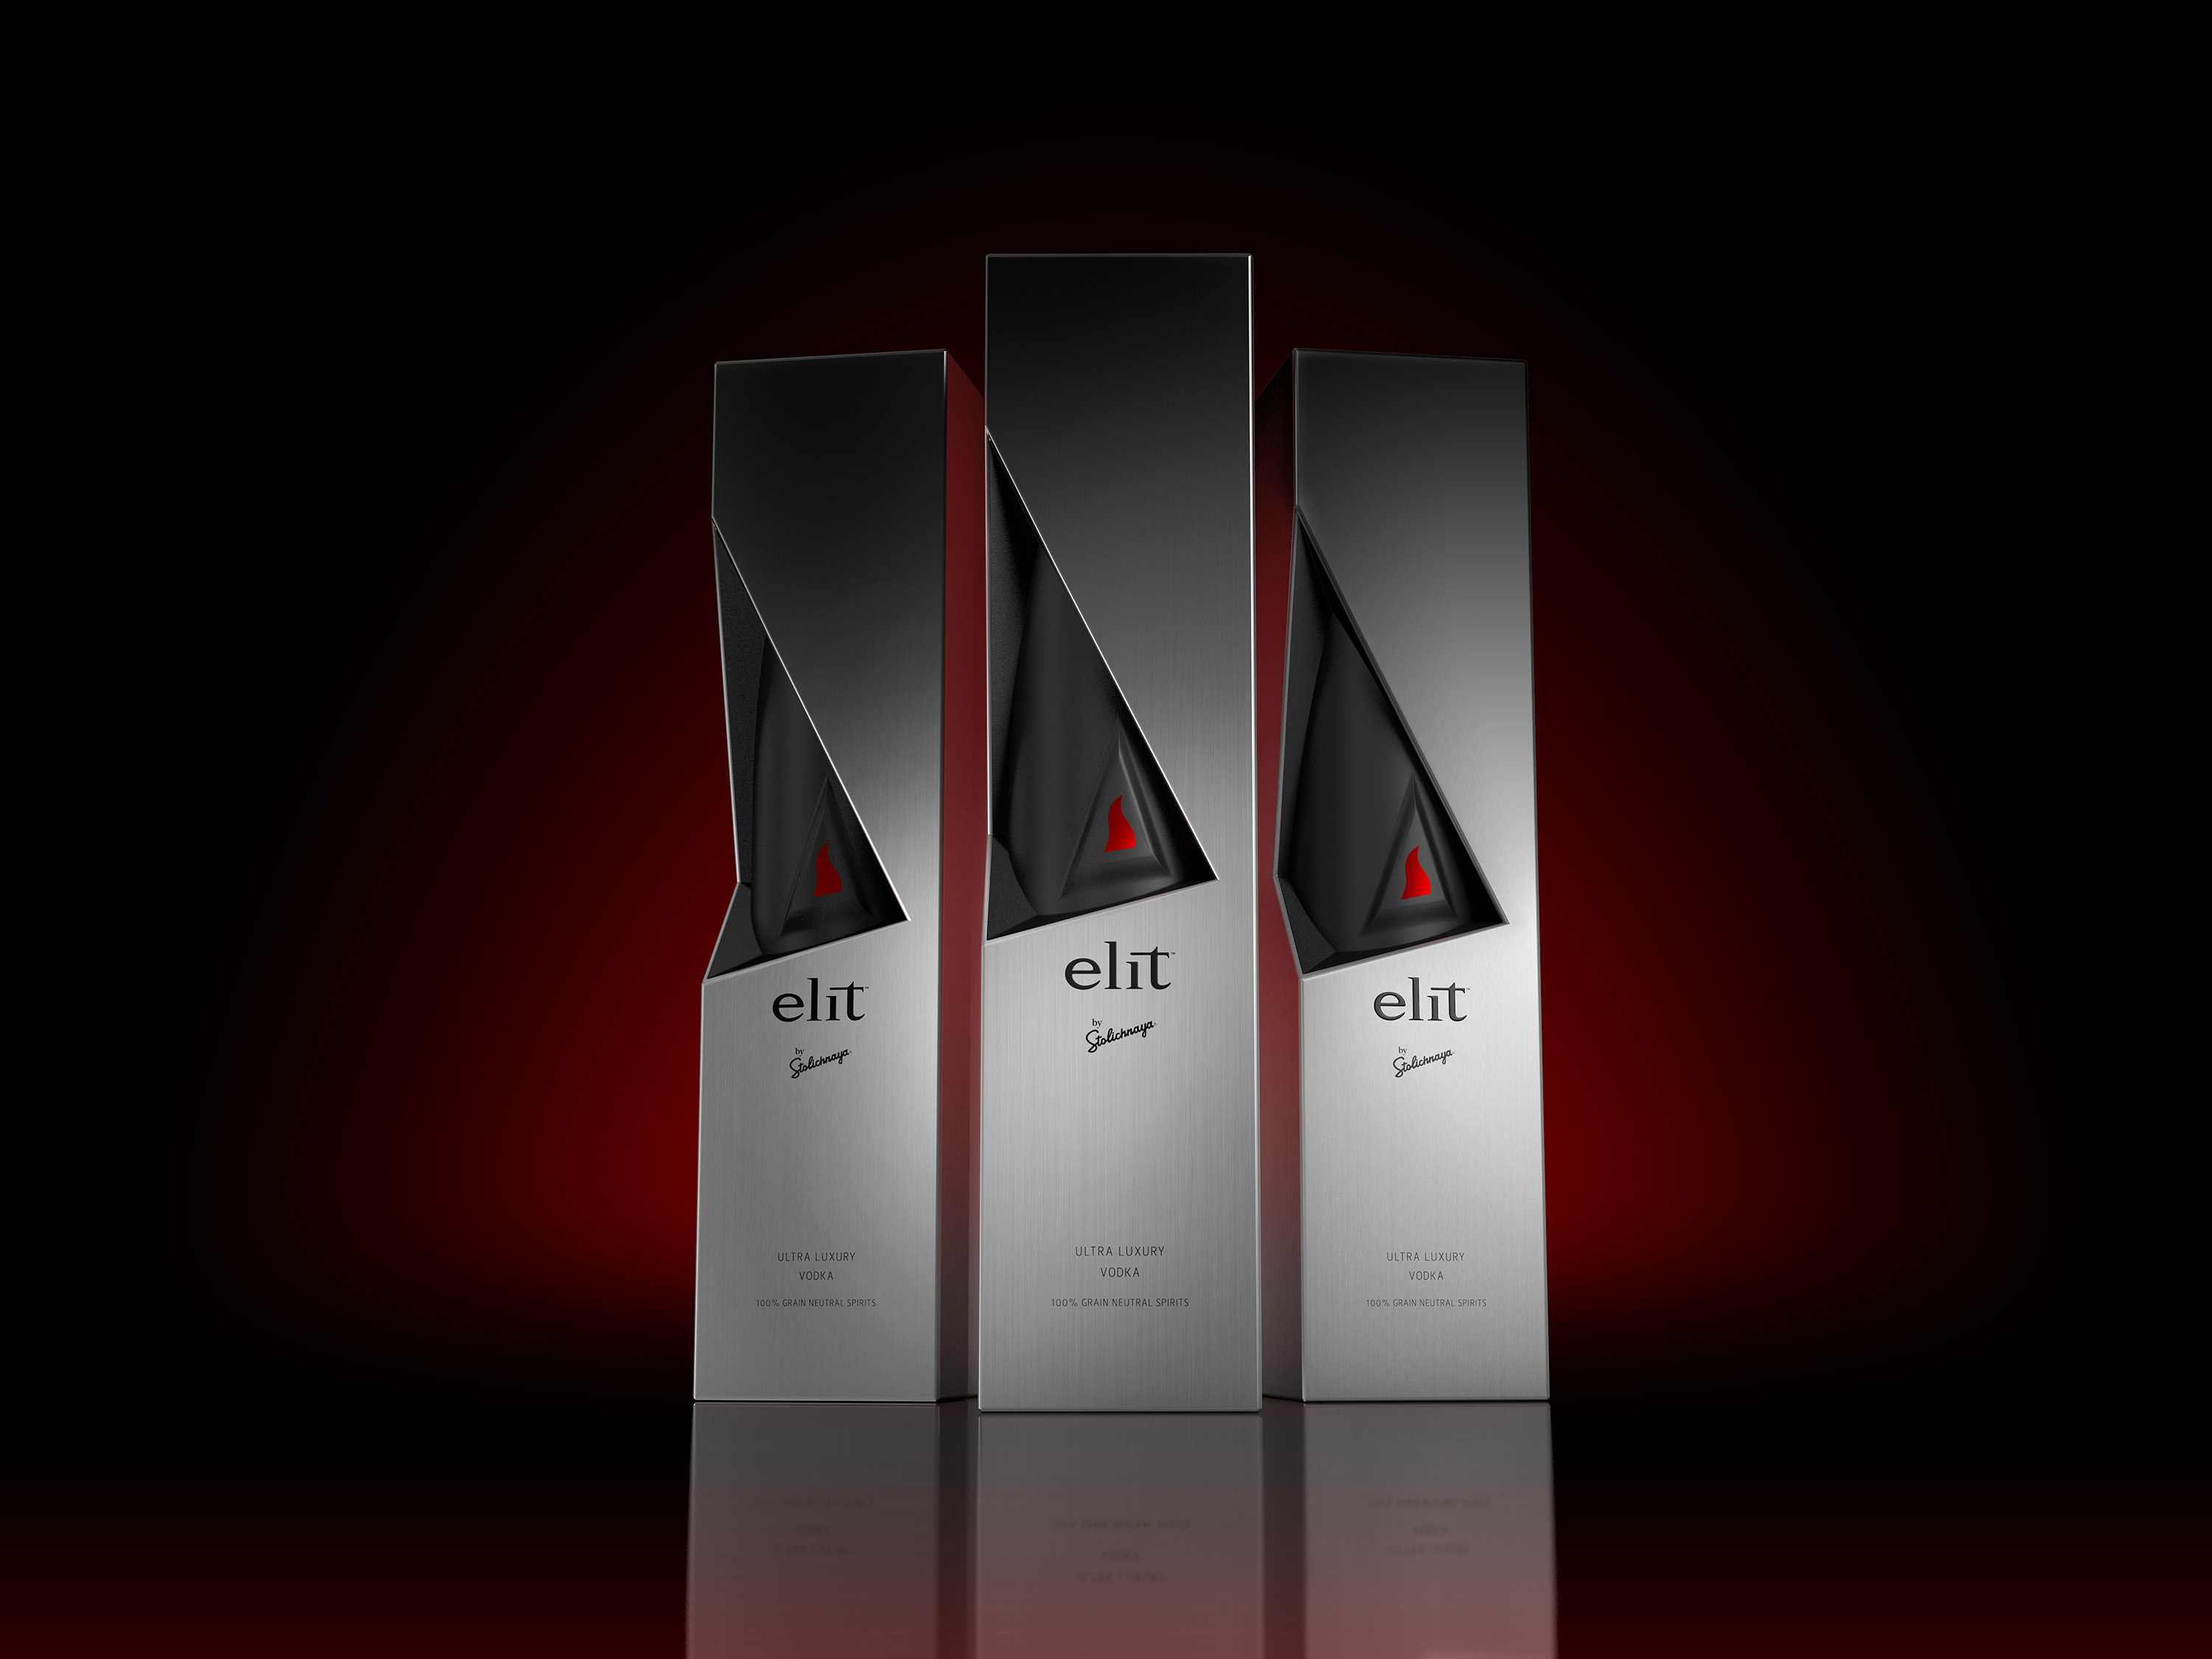 Pic.: gift packs for elit Stolichnaya